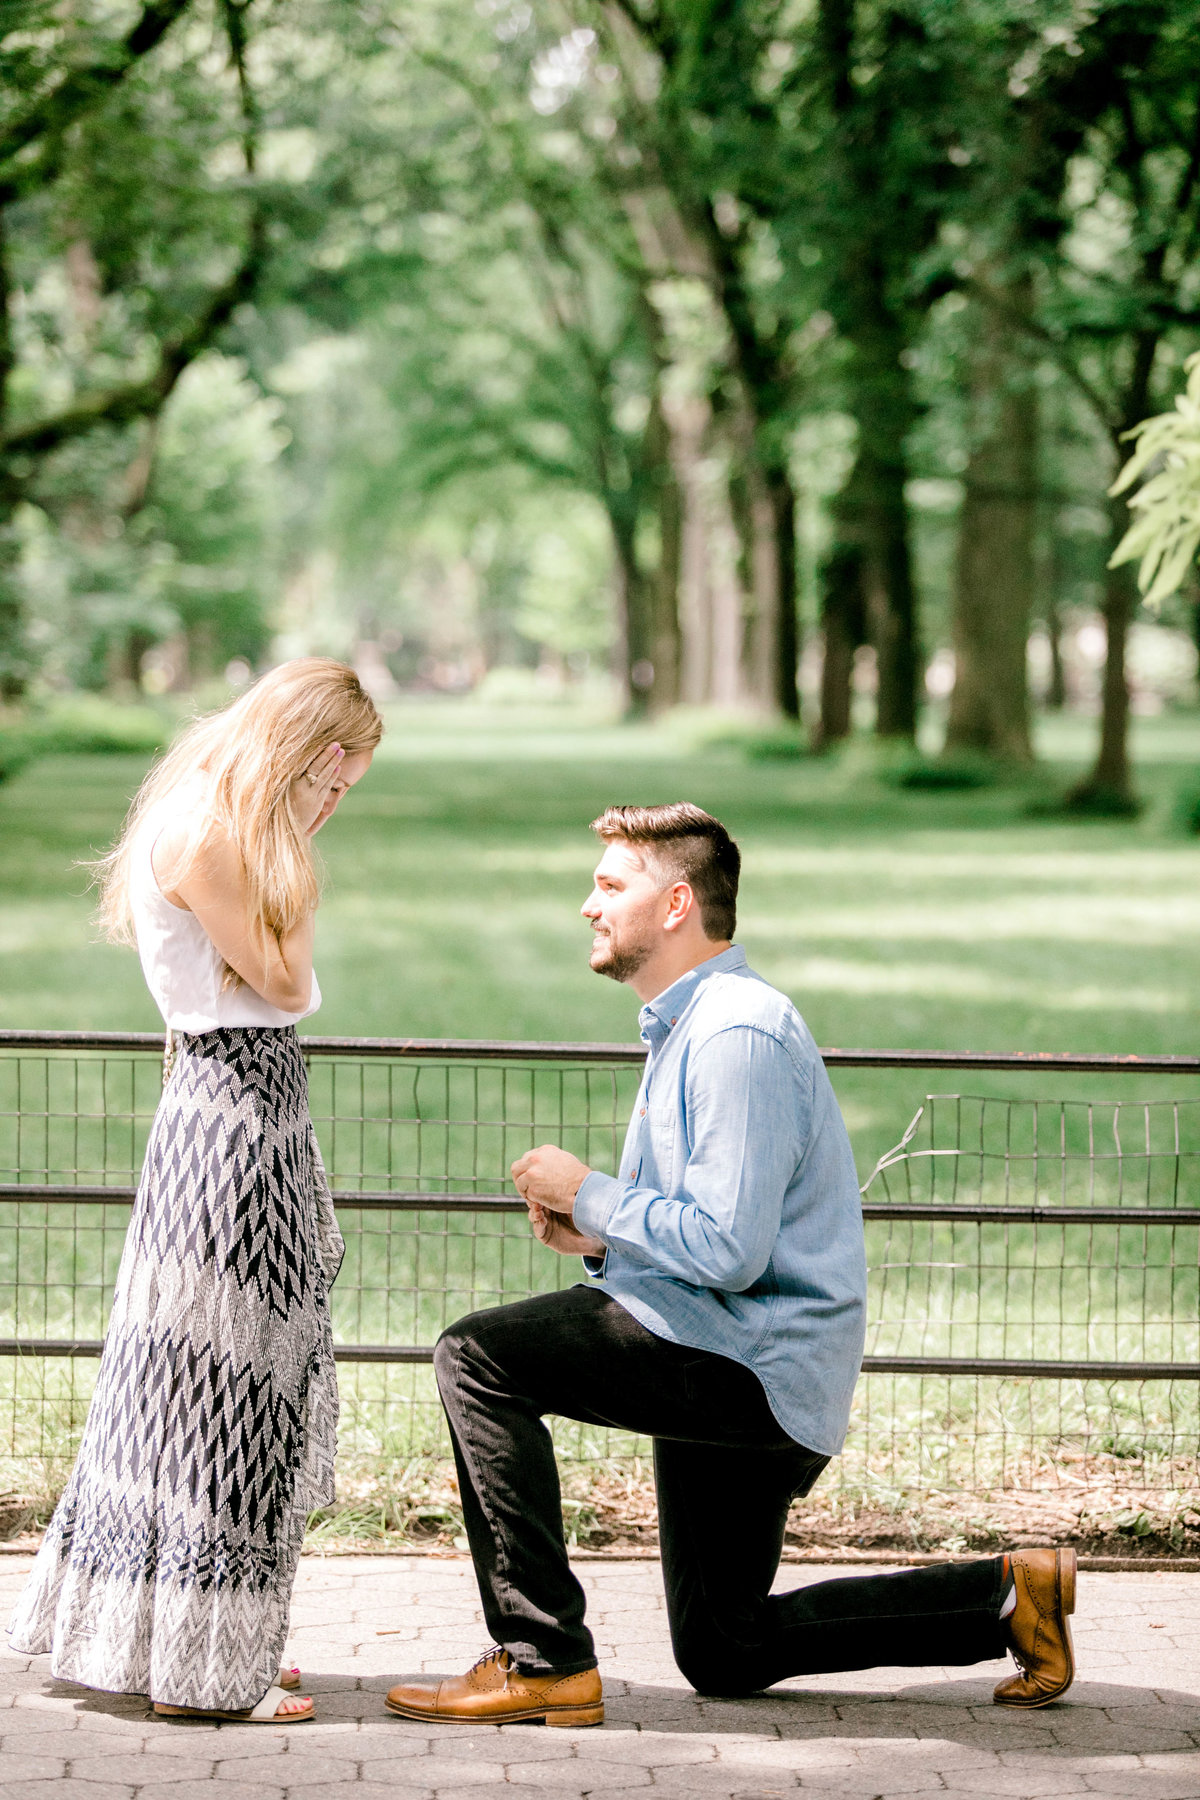 Melanie Foster Photography - Norman Oklahoma Senior and Engagement Photographer - Couple Engagement Photo - 45